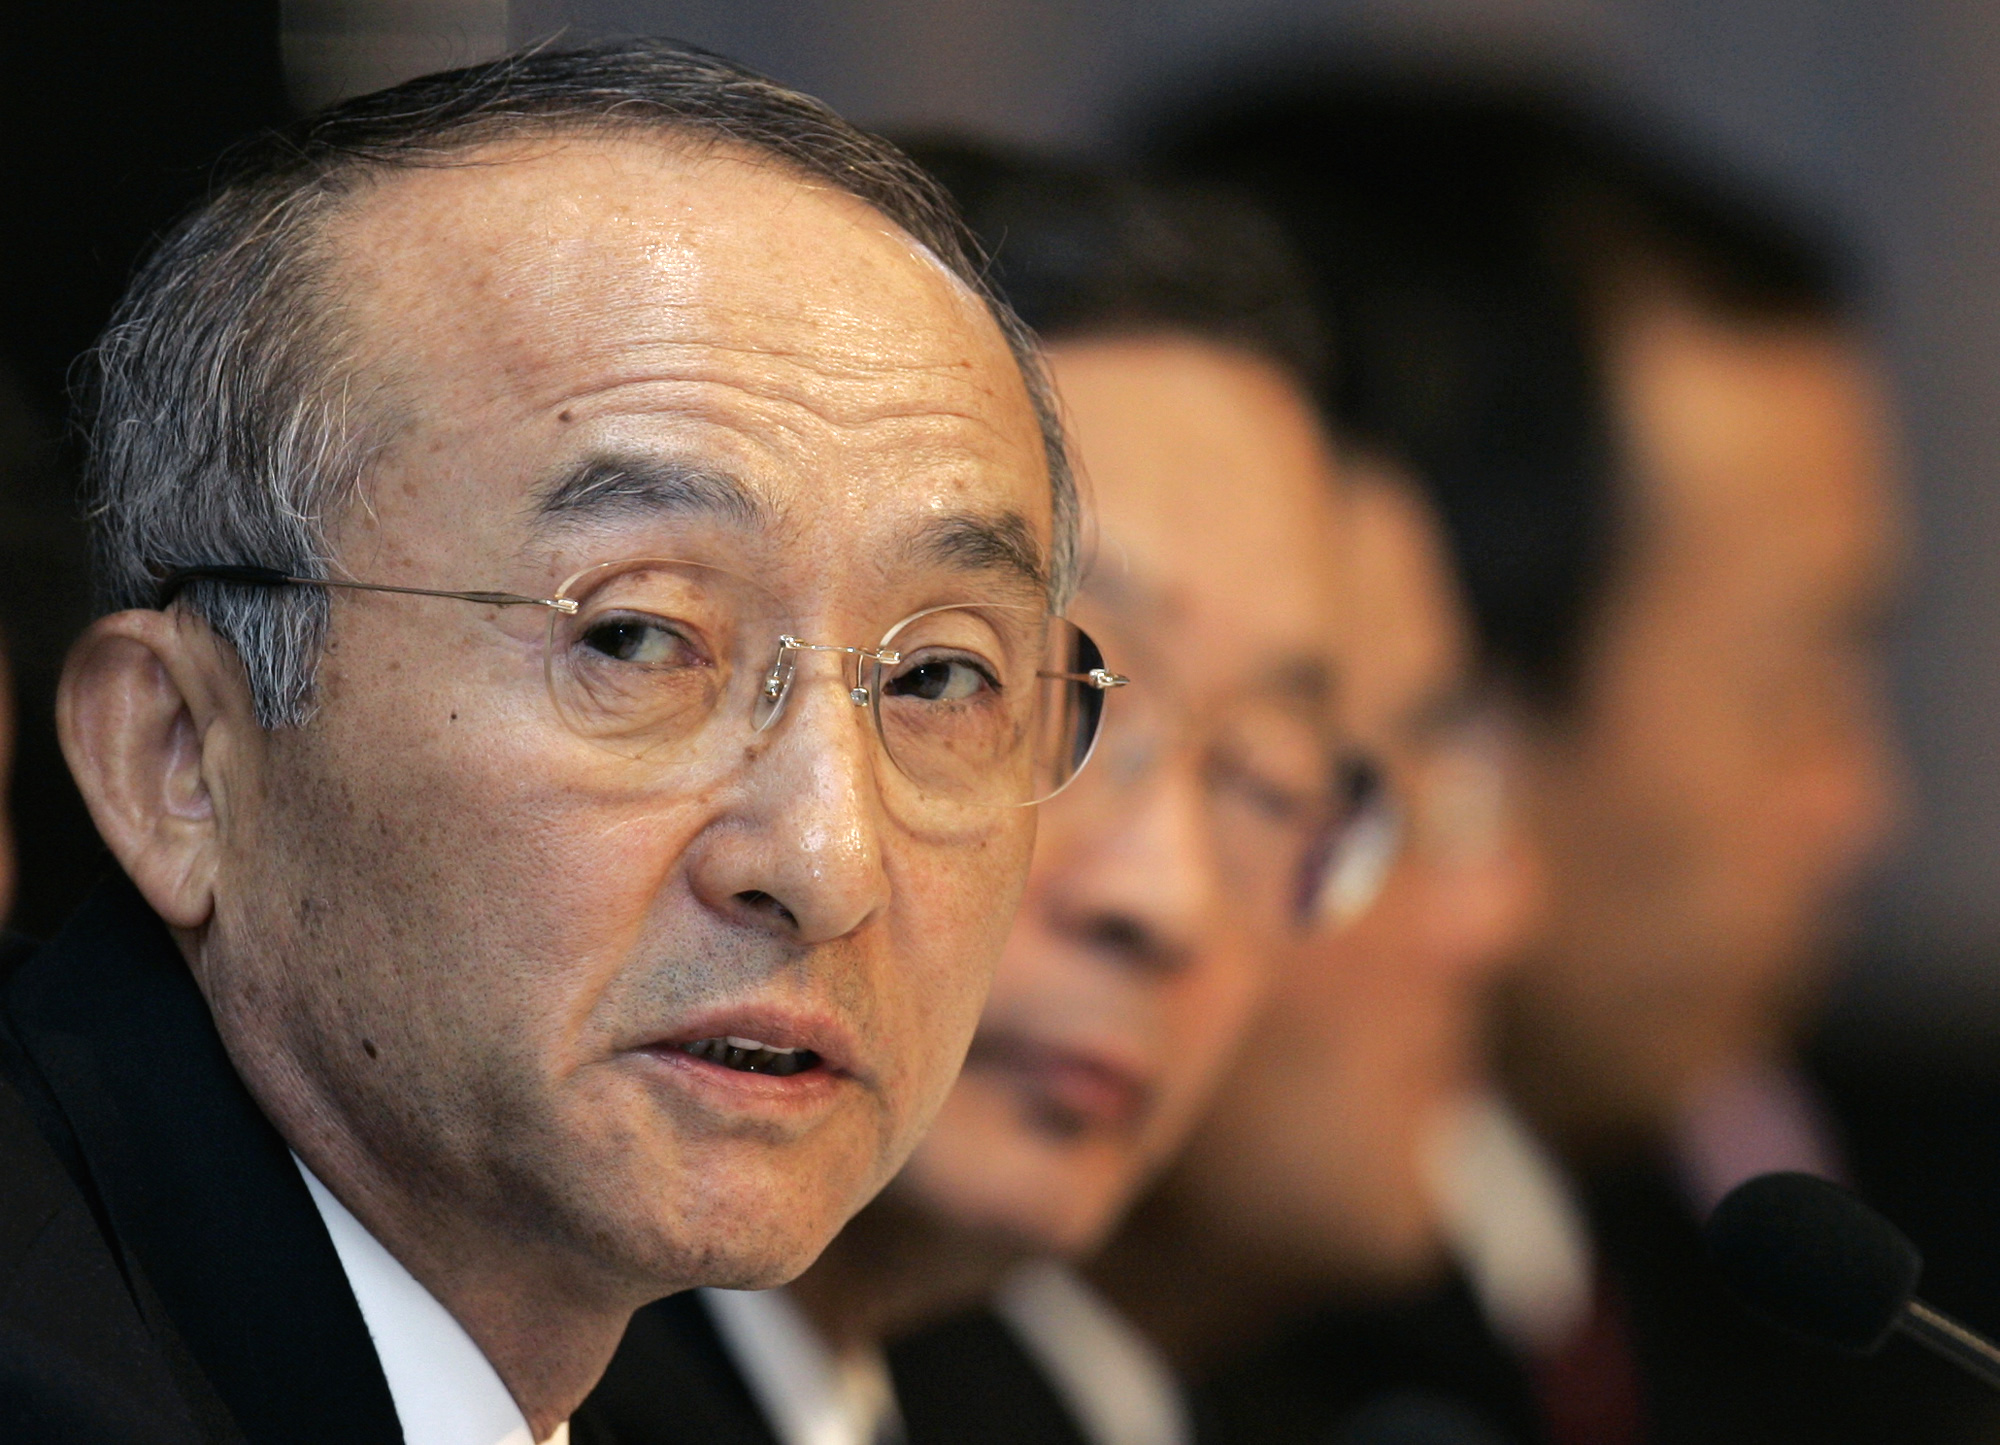 Toyota Motor Corp. President Katsuaki Watanabe speaks to reporters during the annual year-end press conference in Nagoya, central Japan yesterday. Toy...